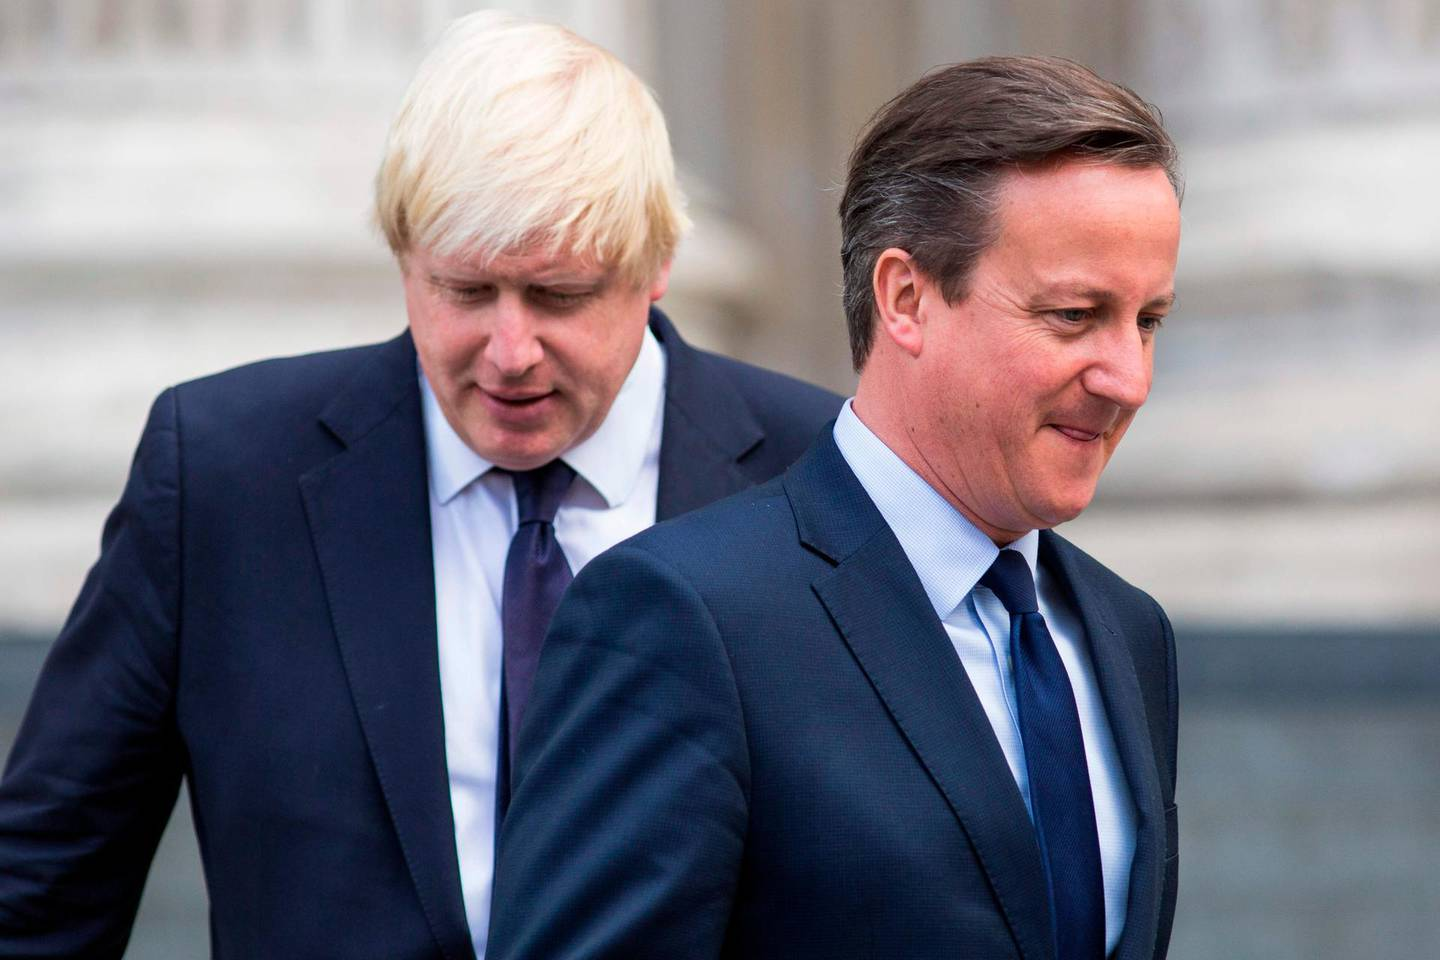 """(FILES) In this file photo taken on July 07, 2015 British Prime Minister David Cameron (R) and London Mayor Boris Johnson leave St Paul's Cathedral in central London after attending a memorial service in memory of the 52 victims of the 7/7 London attacks. Former British prime minister David Cameron said Friday he had no regrets about launching the Brexit referendum but accused current PM Boris Johnson of behaving """"appallingly"""" during the pre-vote campaigning. / AFP / JACK TAYLOR"""